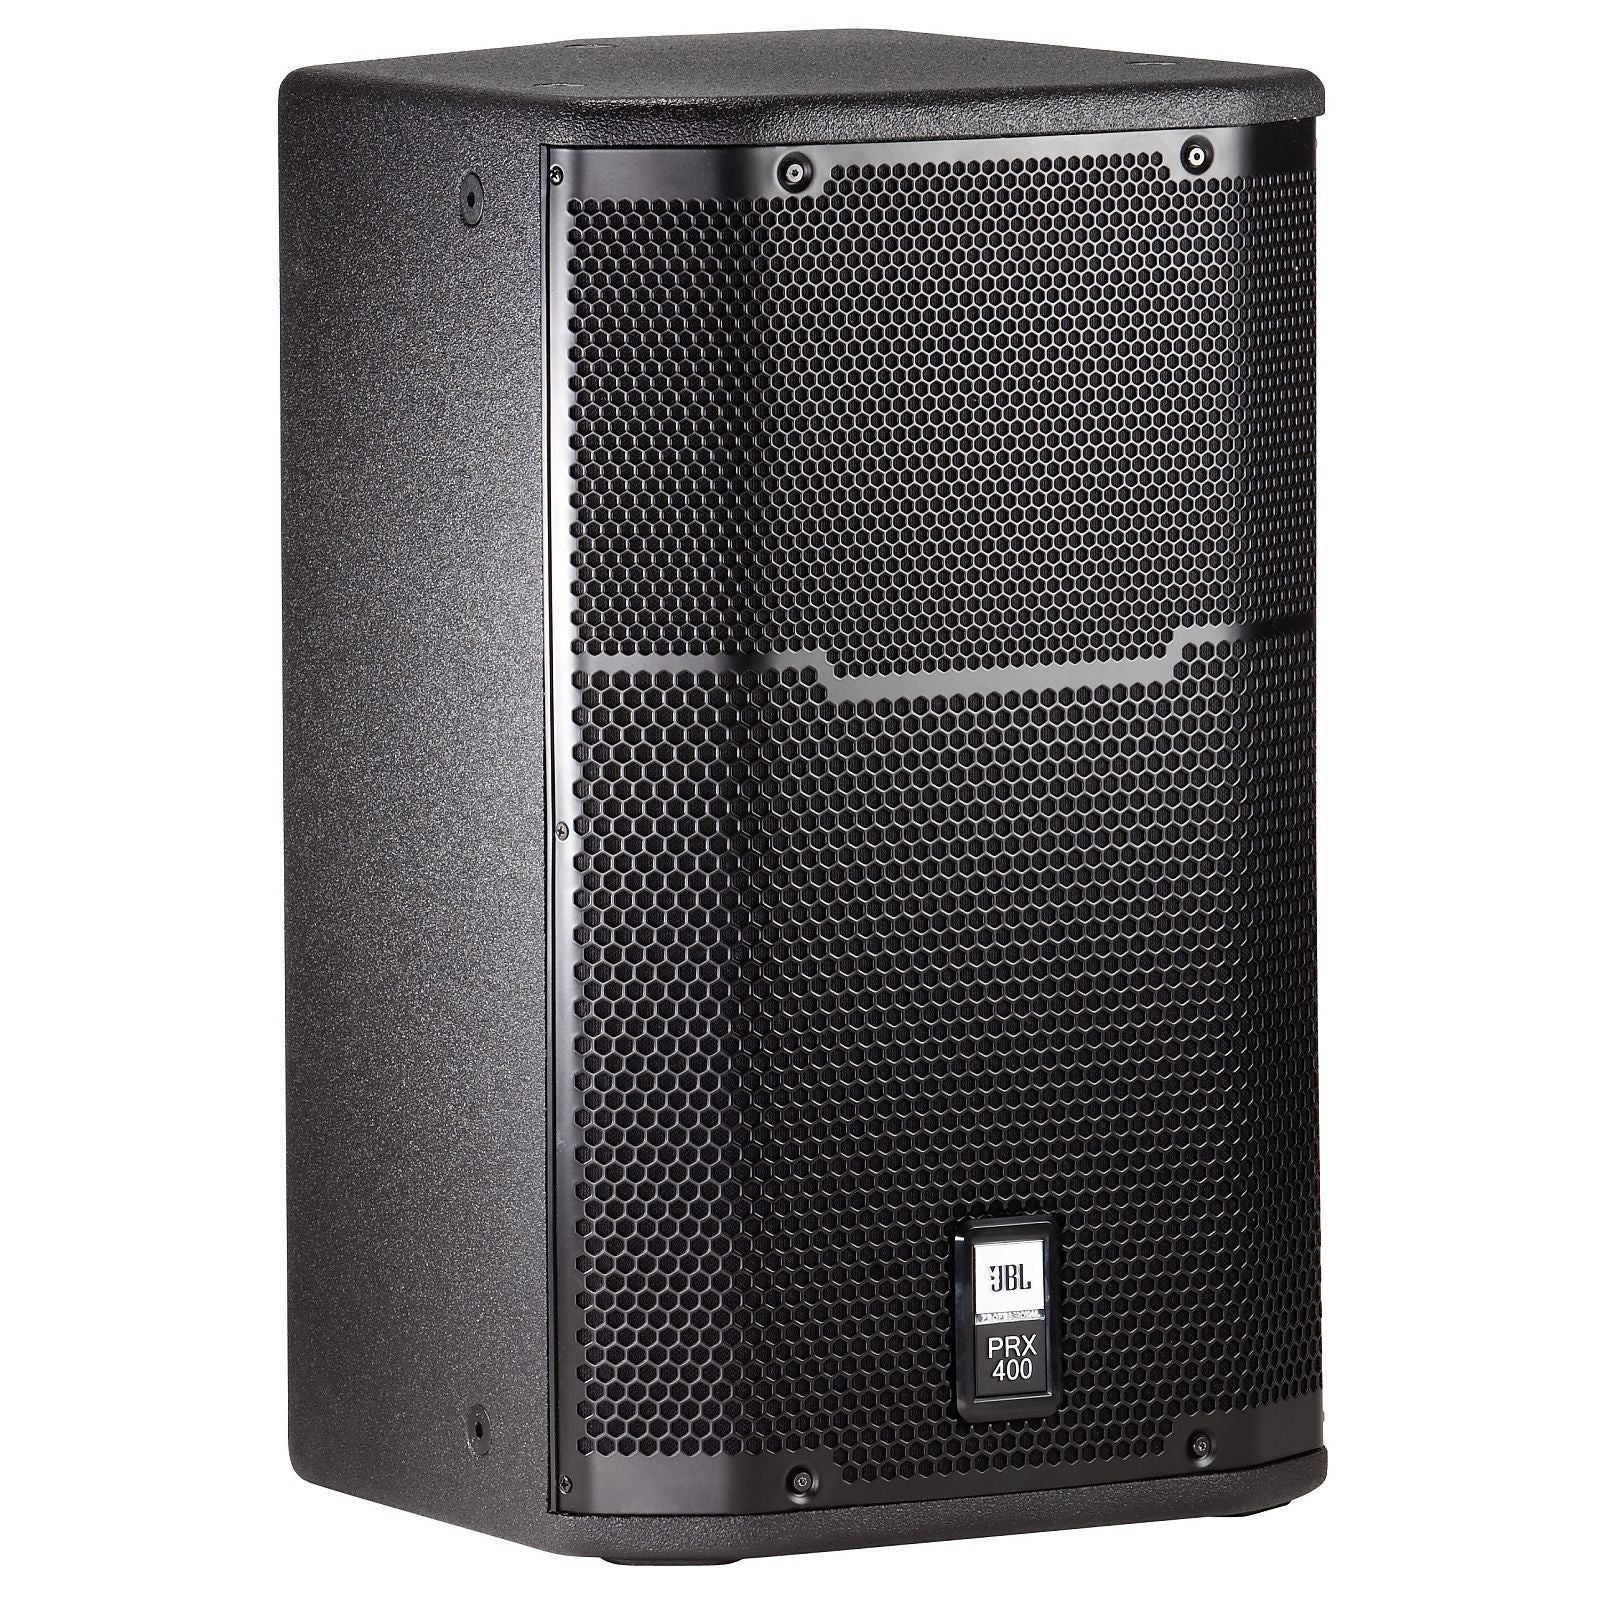 JBL PRX412M 2-Way Passive, Unpowered Loudspeaker System (600 Watts and 1x12 Inch)